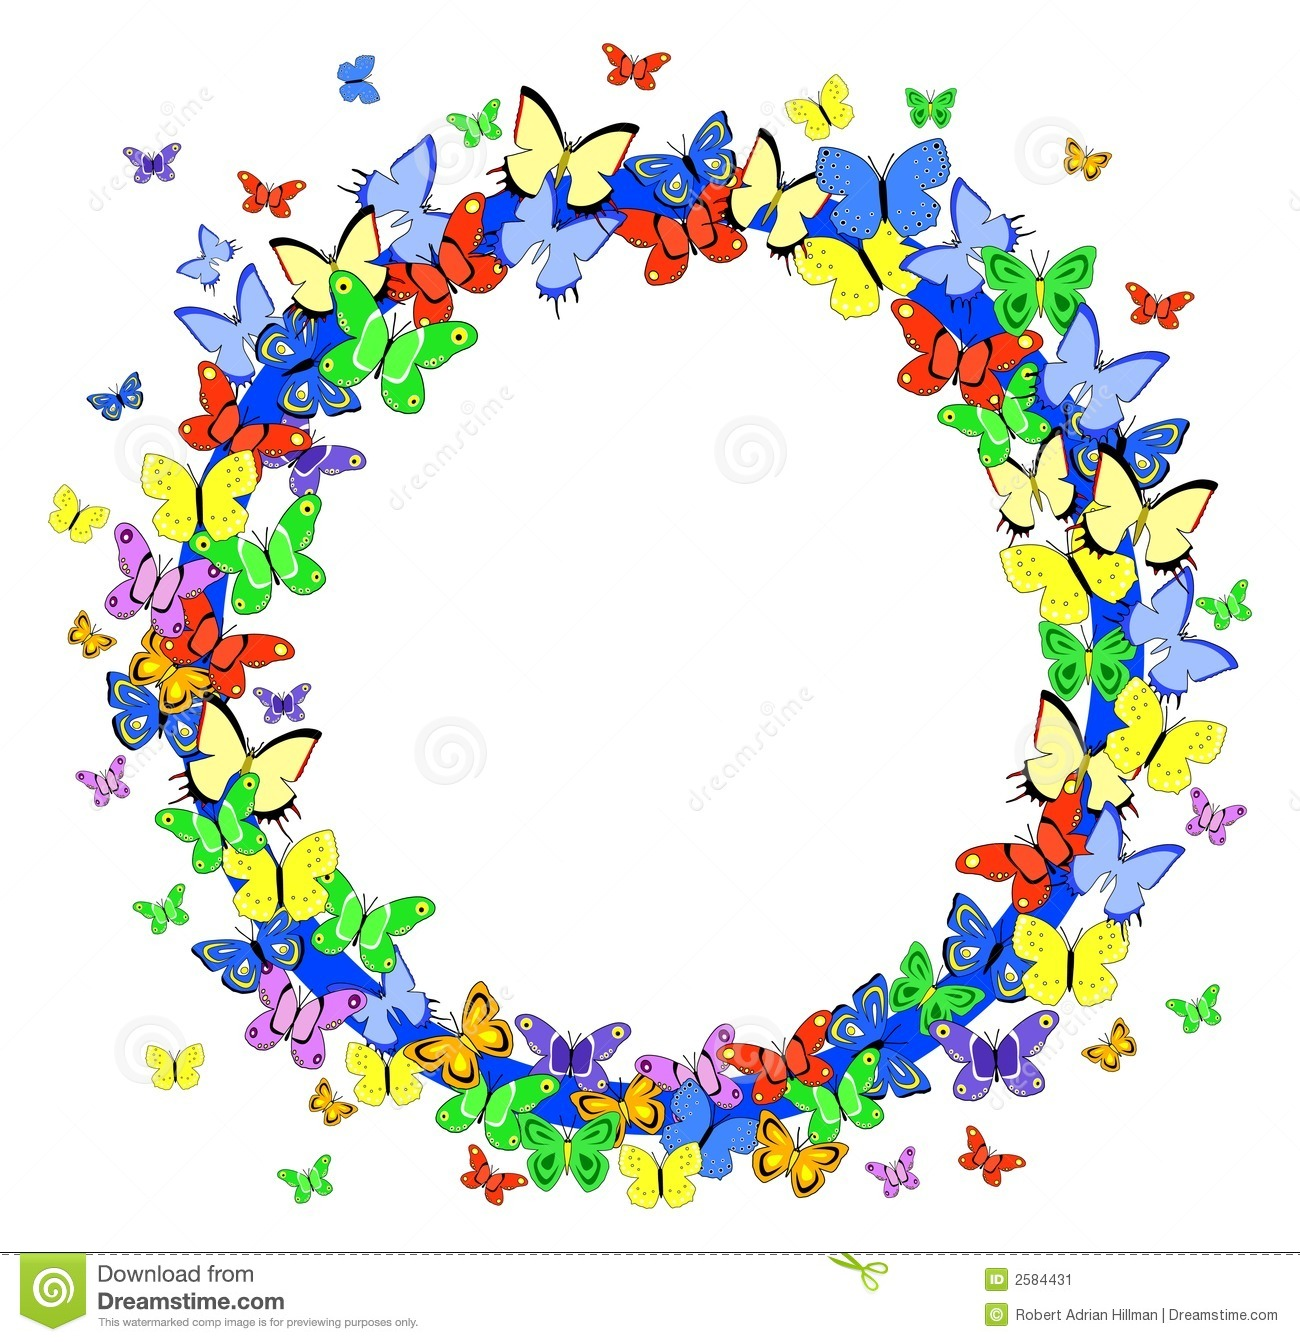 clipart flowers and butterflies-clipart flowers and butterflies-4